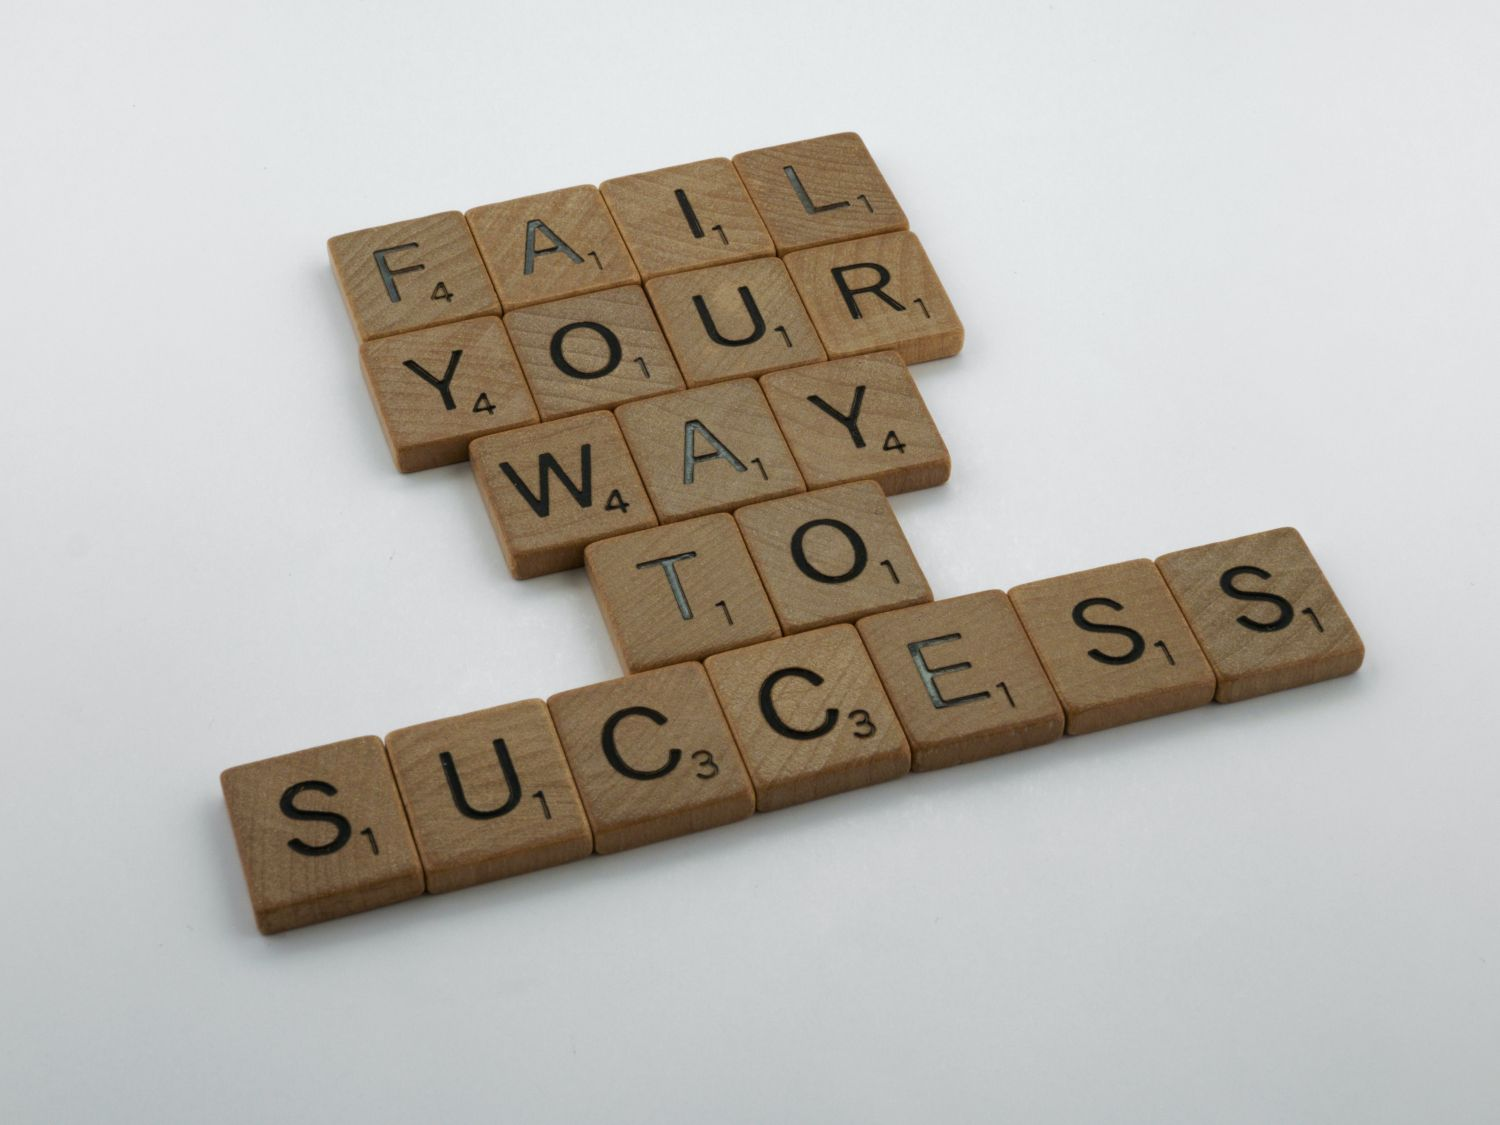 Give up, it's much easier - roxiva.com